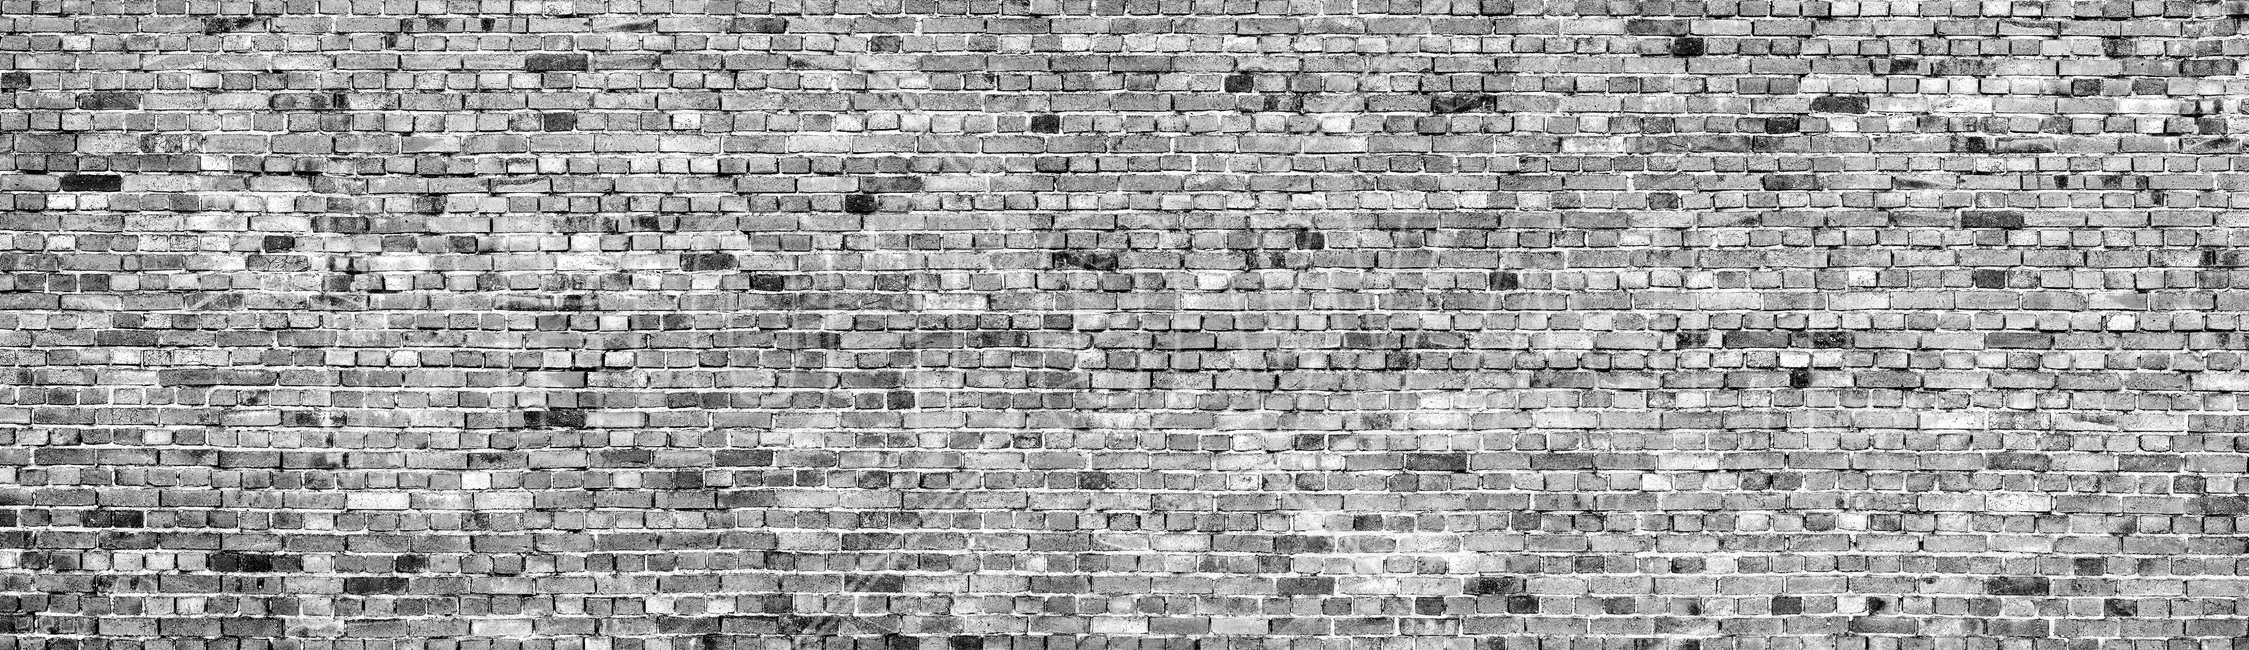 Stockholm Brick Wall - Black and White